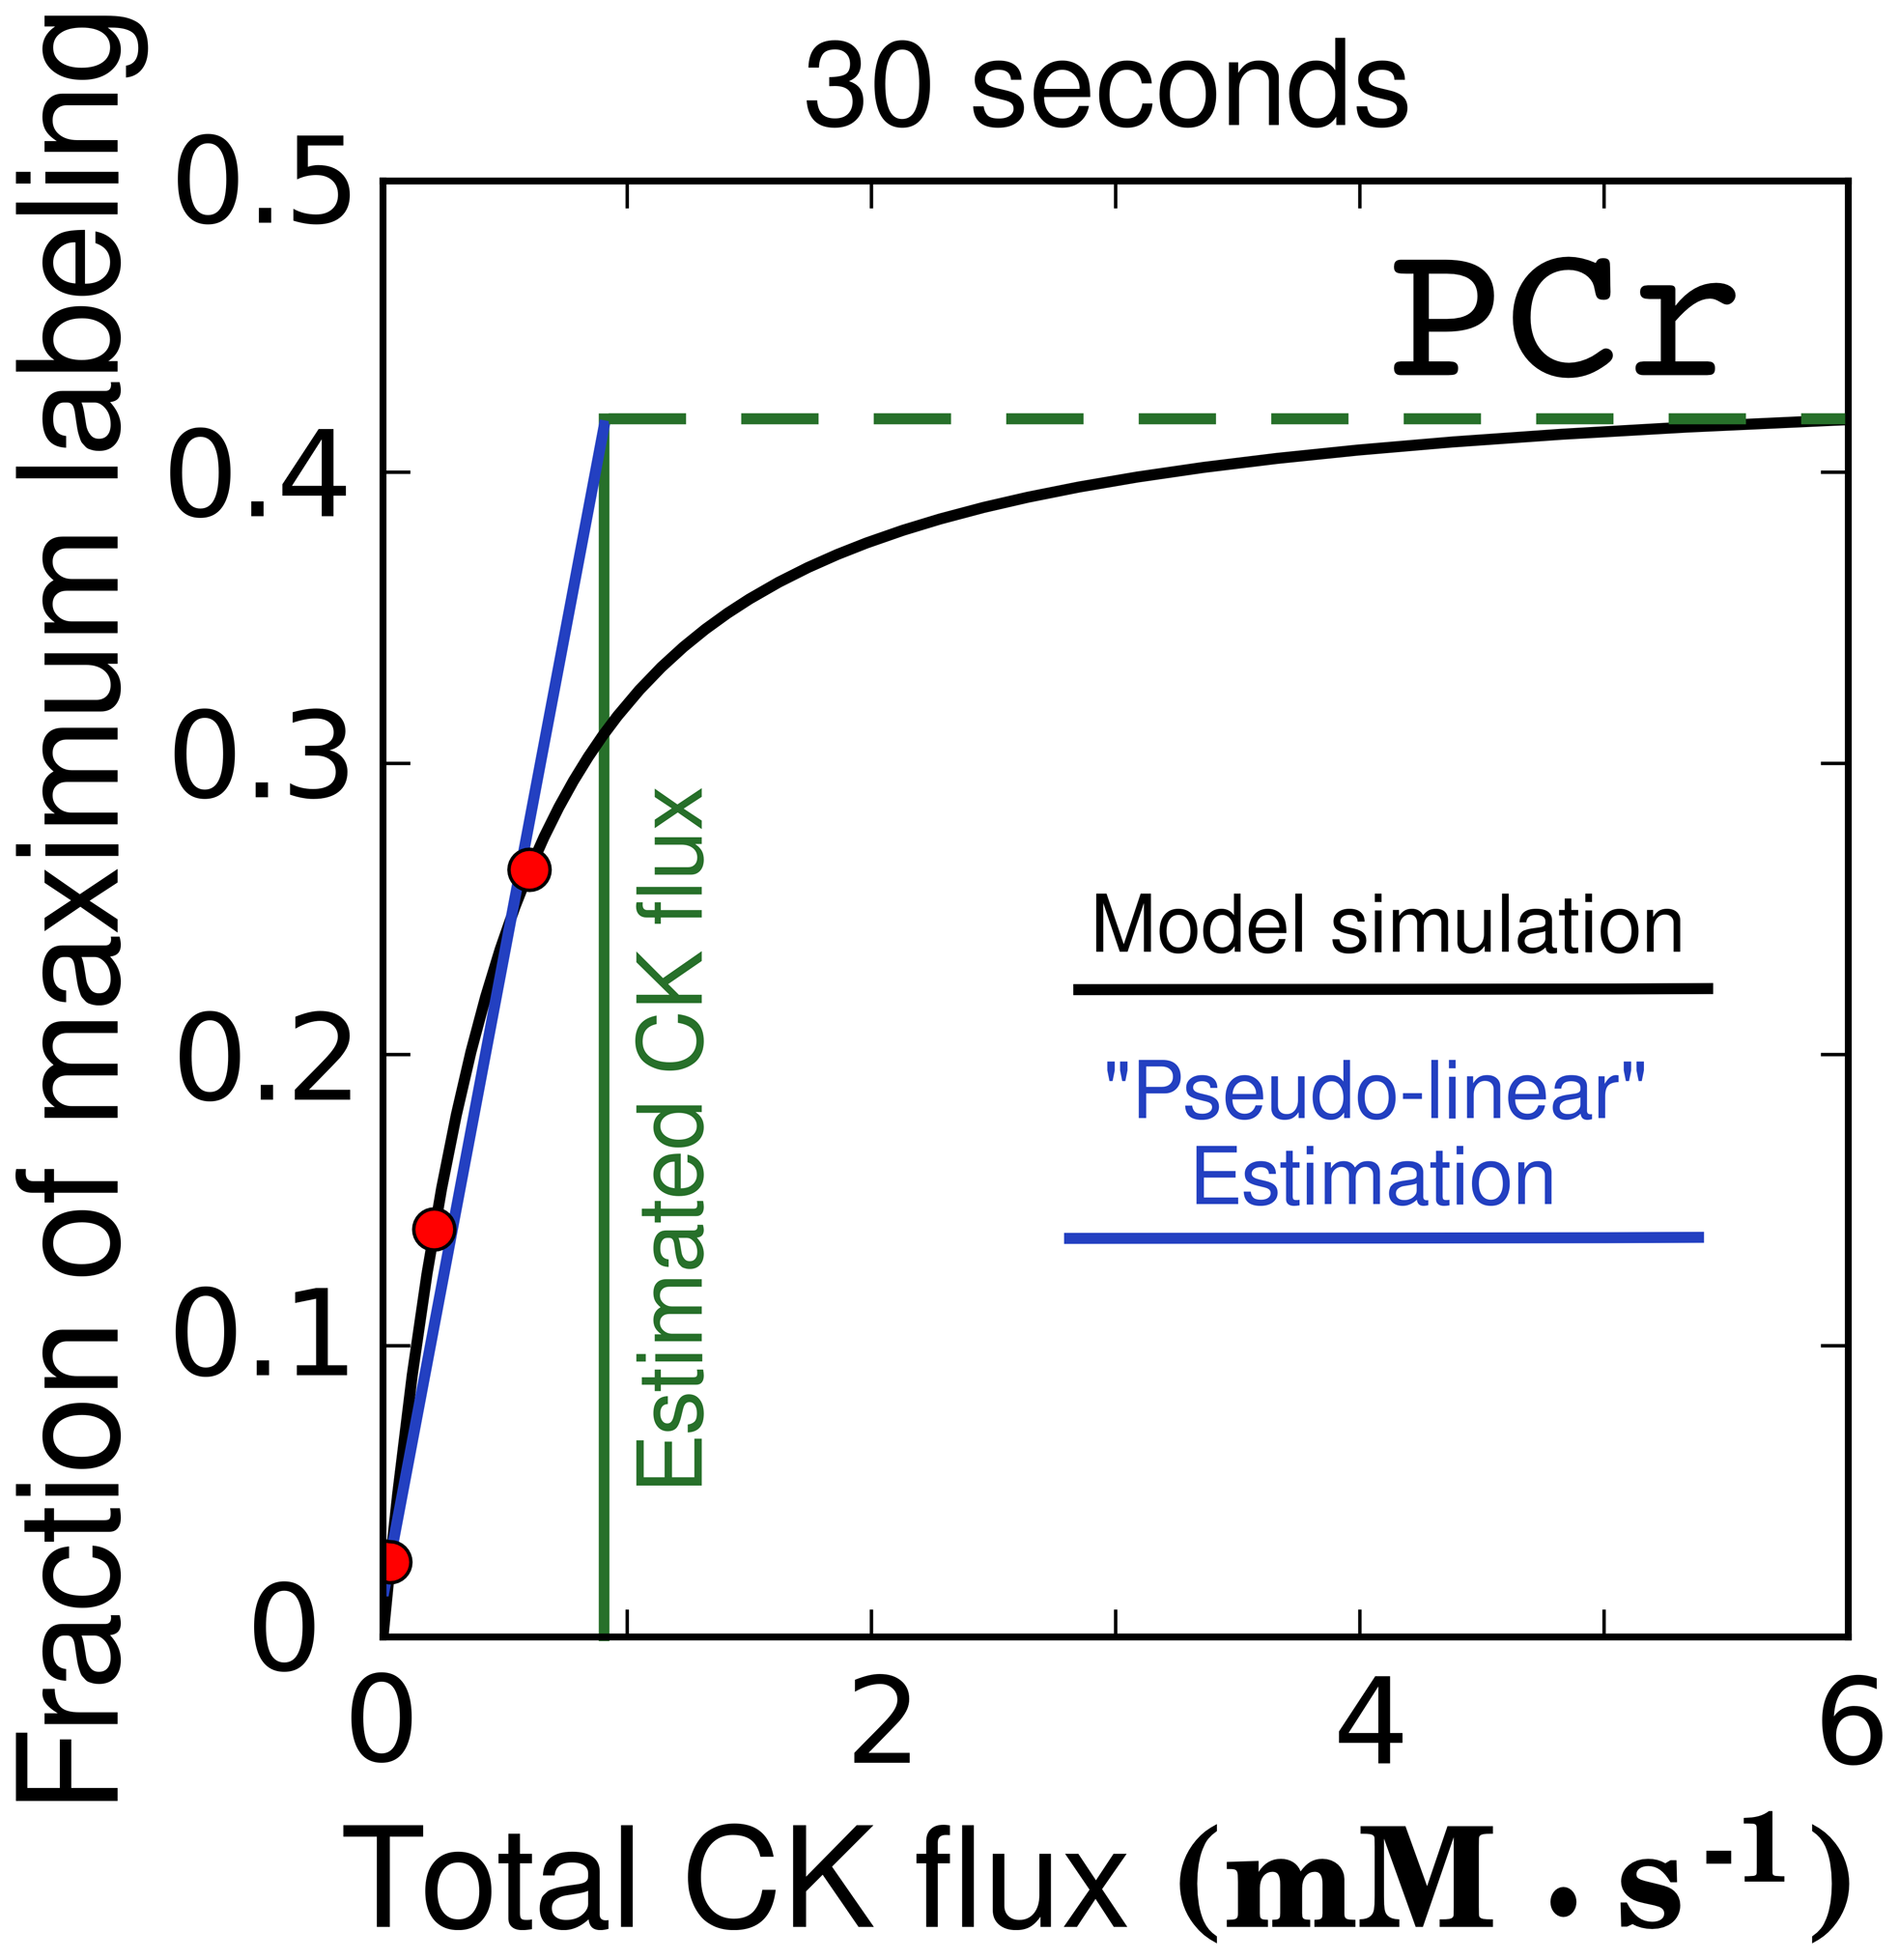 Demonstration of saturation of PCr labeling at higher CK fluxes.